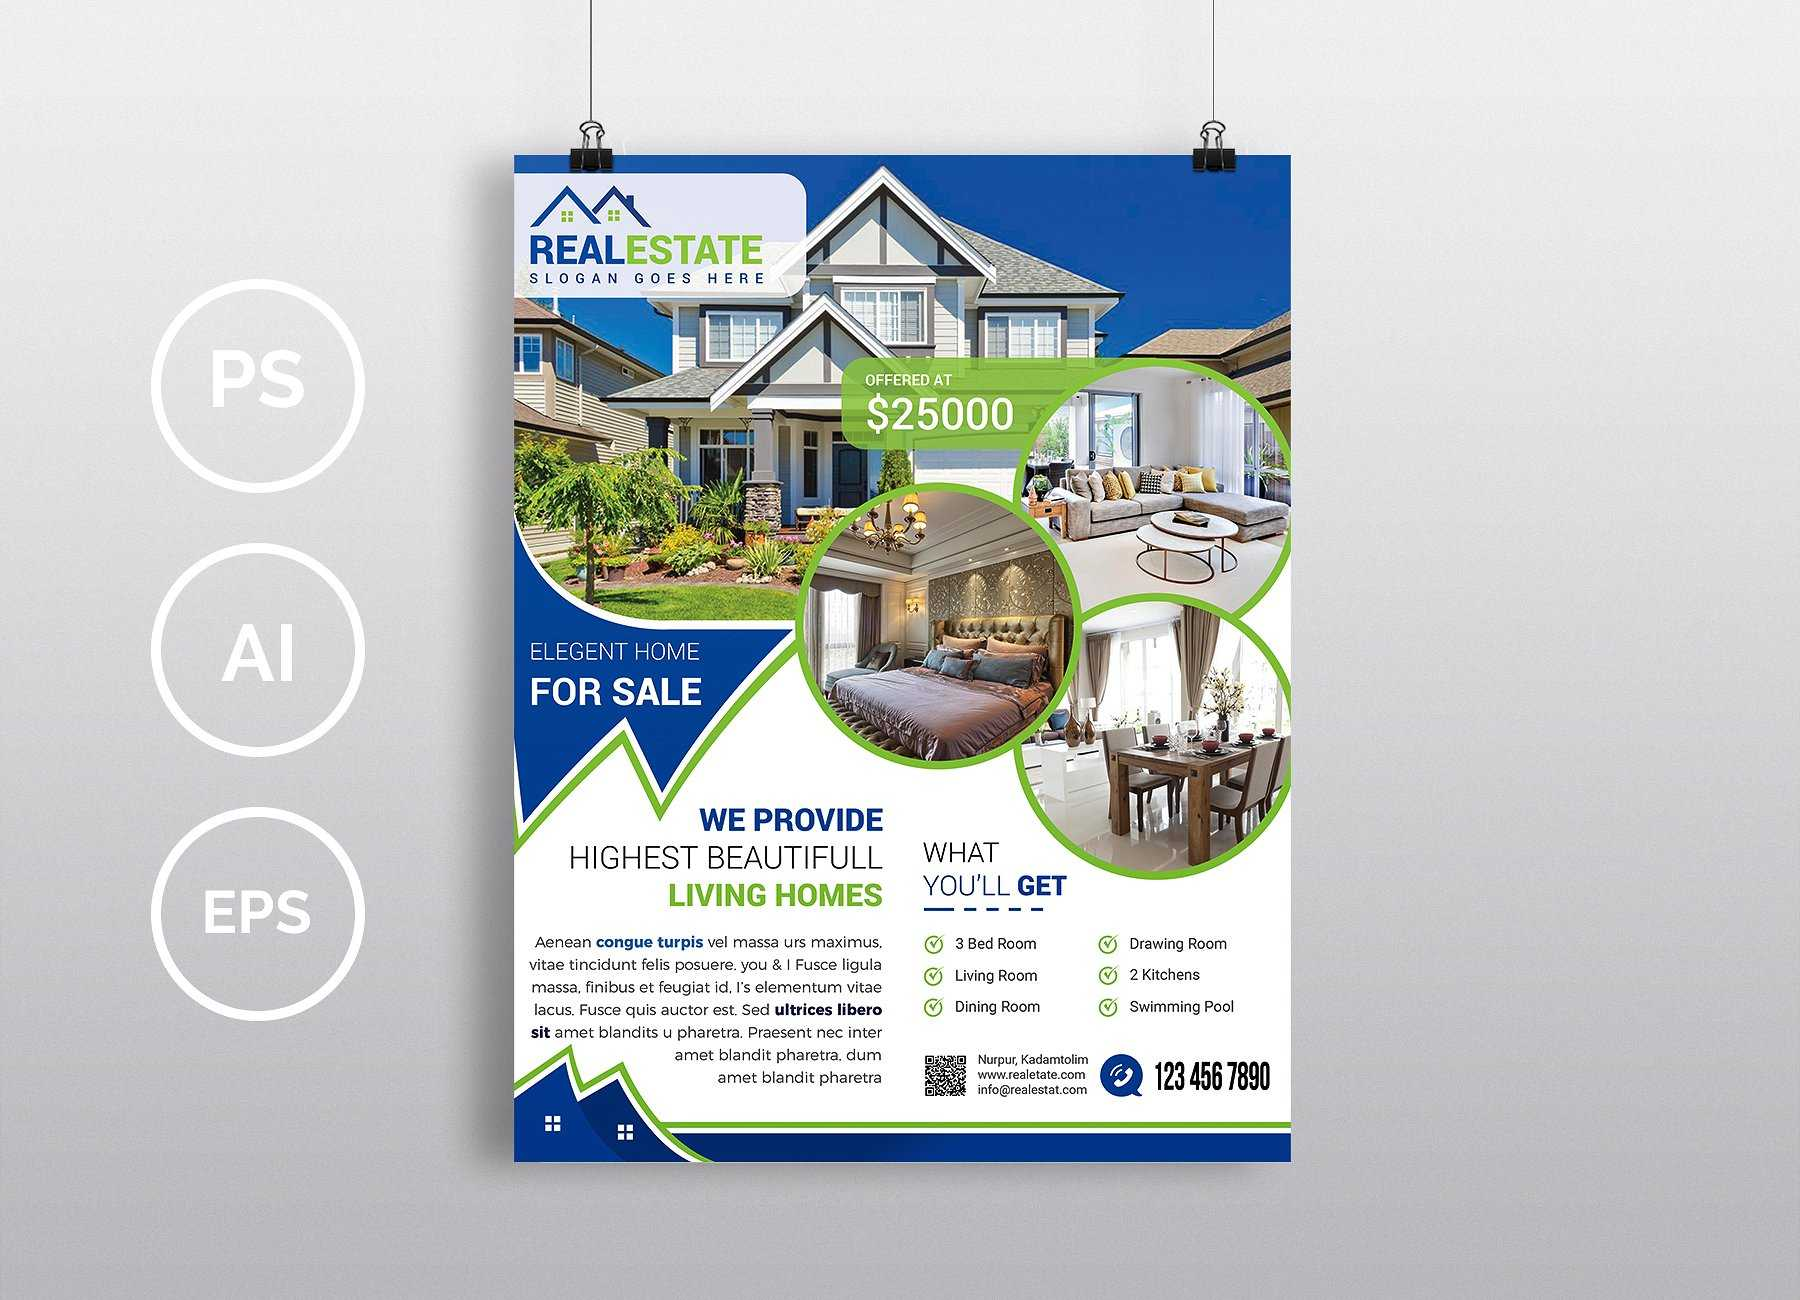 001 Real Estate Flyer Template Psd Free Download Design With Regard To Real Estate Brochure Templates Psd Free Download